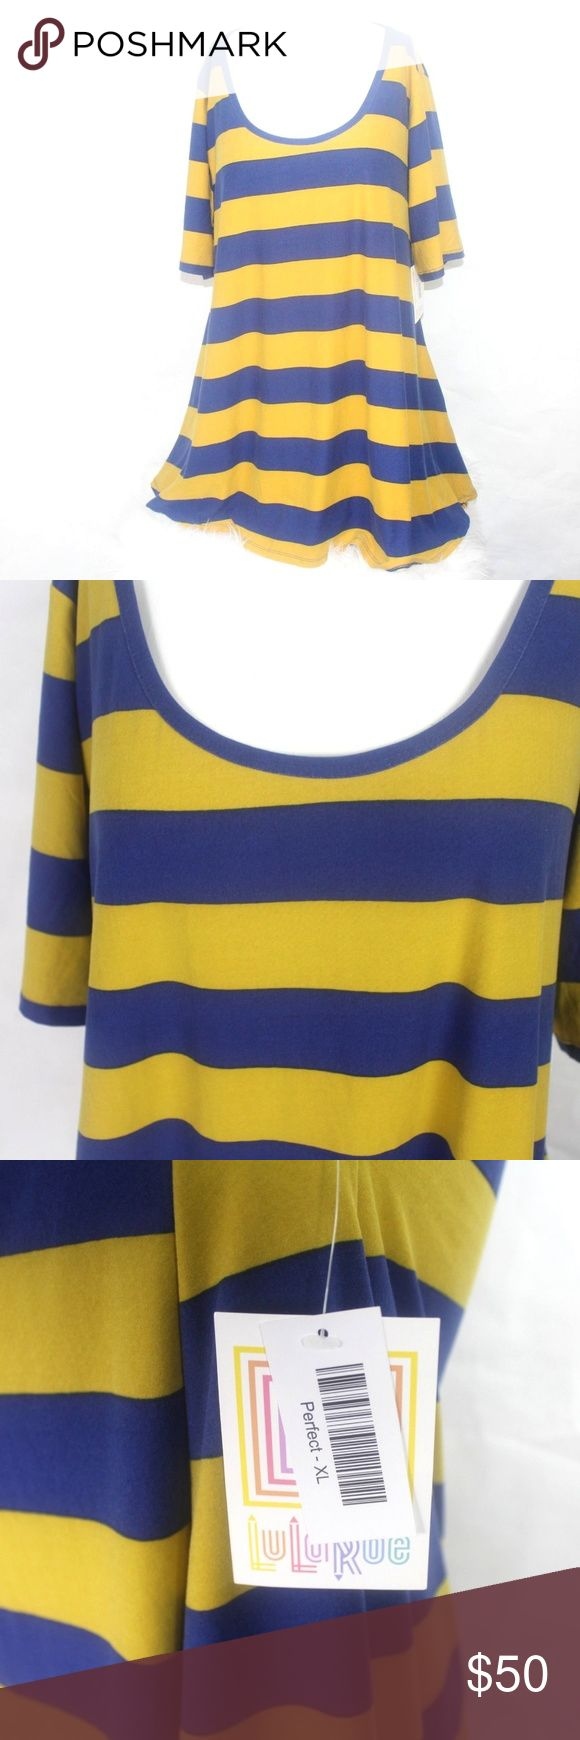 LuLaroe NWT Womens Perfect Wide Stripe Mustard Blu LuLaroe NWT Womens Perfect Wide Stripe Mustard Blue S/S Knit Tee Sz XL A Comfy 95% Polyester 5% Spandex Bust 23 Inches Sleeves 11 Inches Length 30 Inches LuLaRoe Tops Blouses